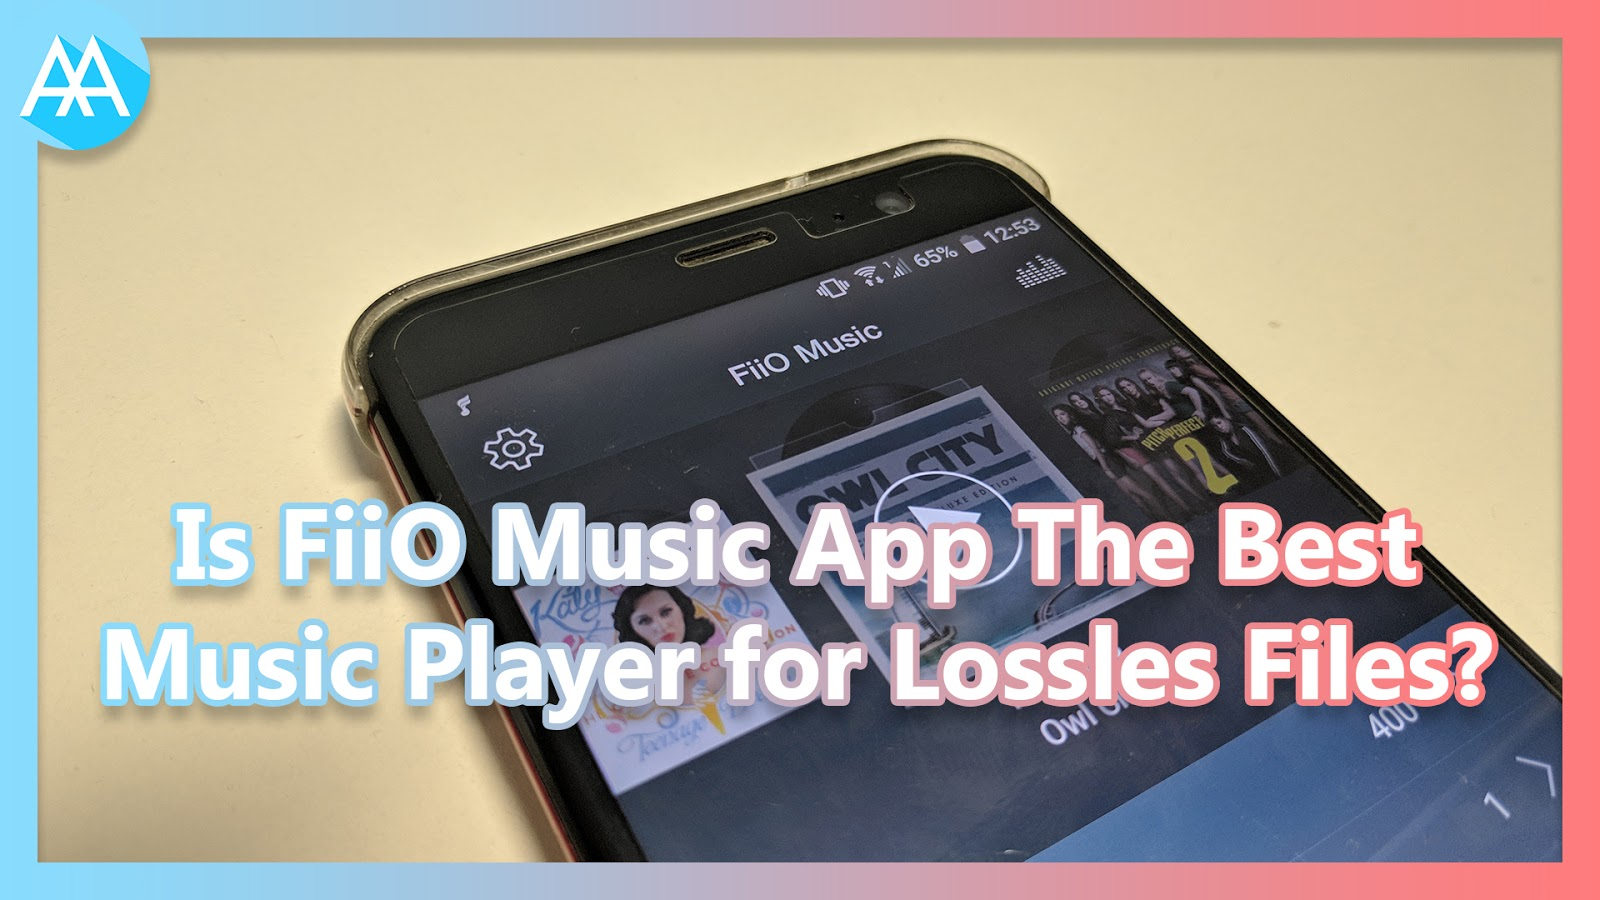 Is FiiO Music App The Best Music Player for Lossless Files